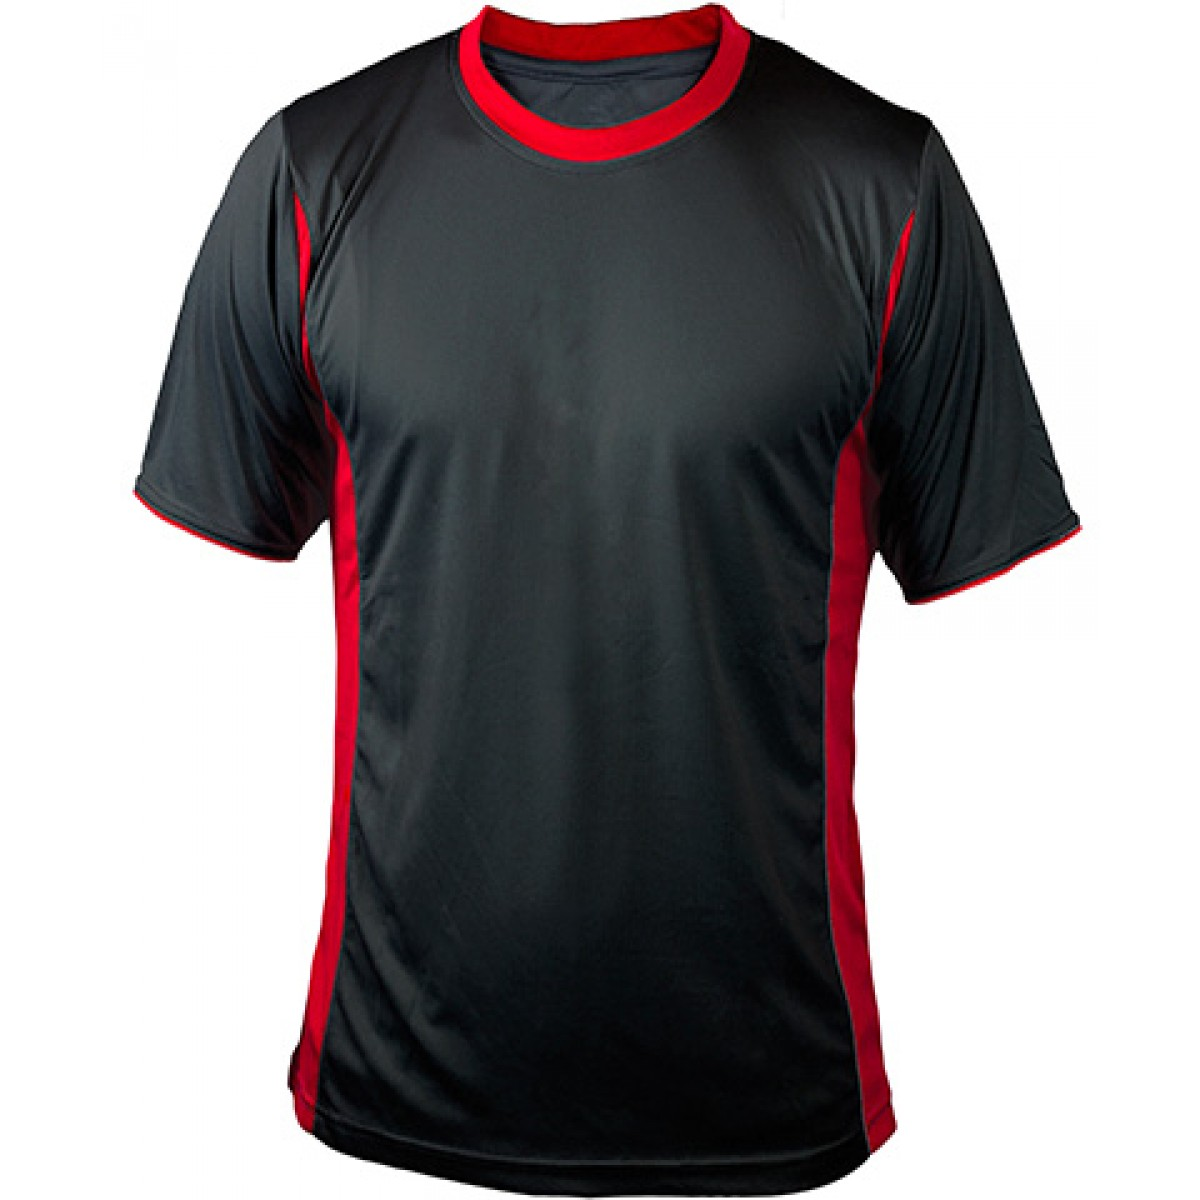 Black Short Sleeves Performance With Red Side Insert-Black-YM